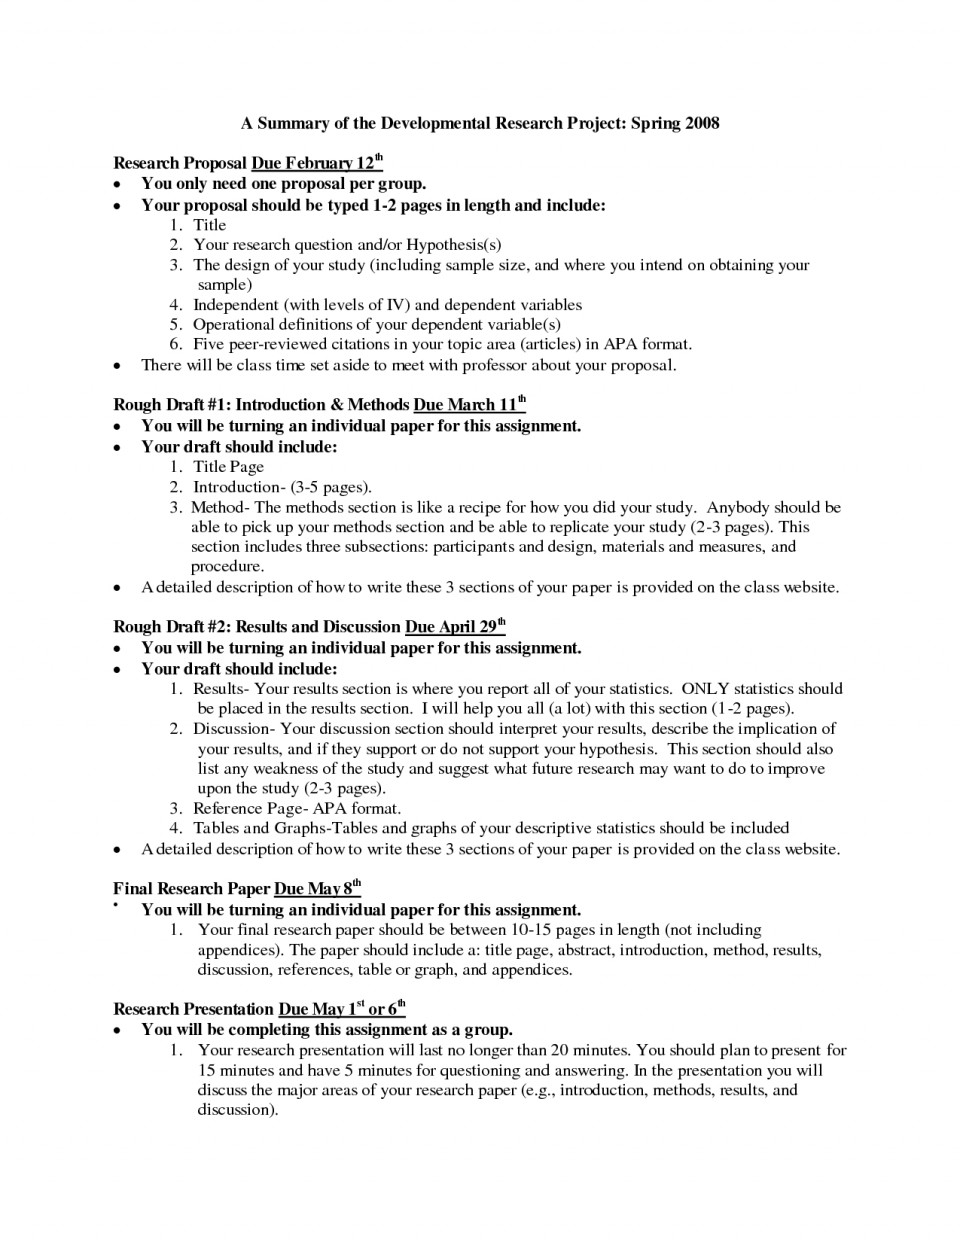 012 Good Research Paper Topic Psychology Undergraduate Resume Unique Sample Singular Topics History Reddit Argumentative About Sports 960